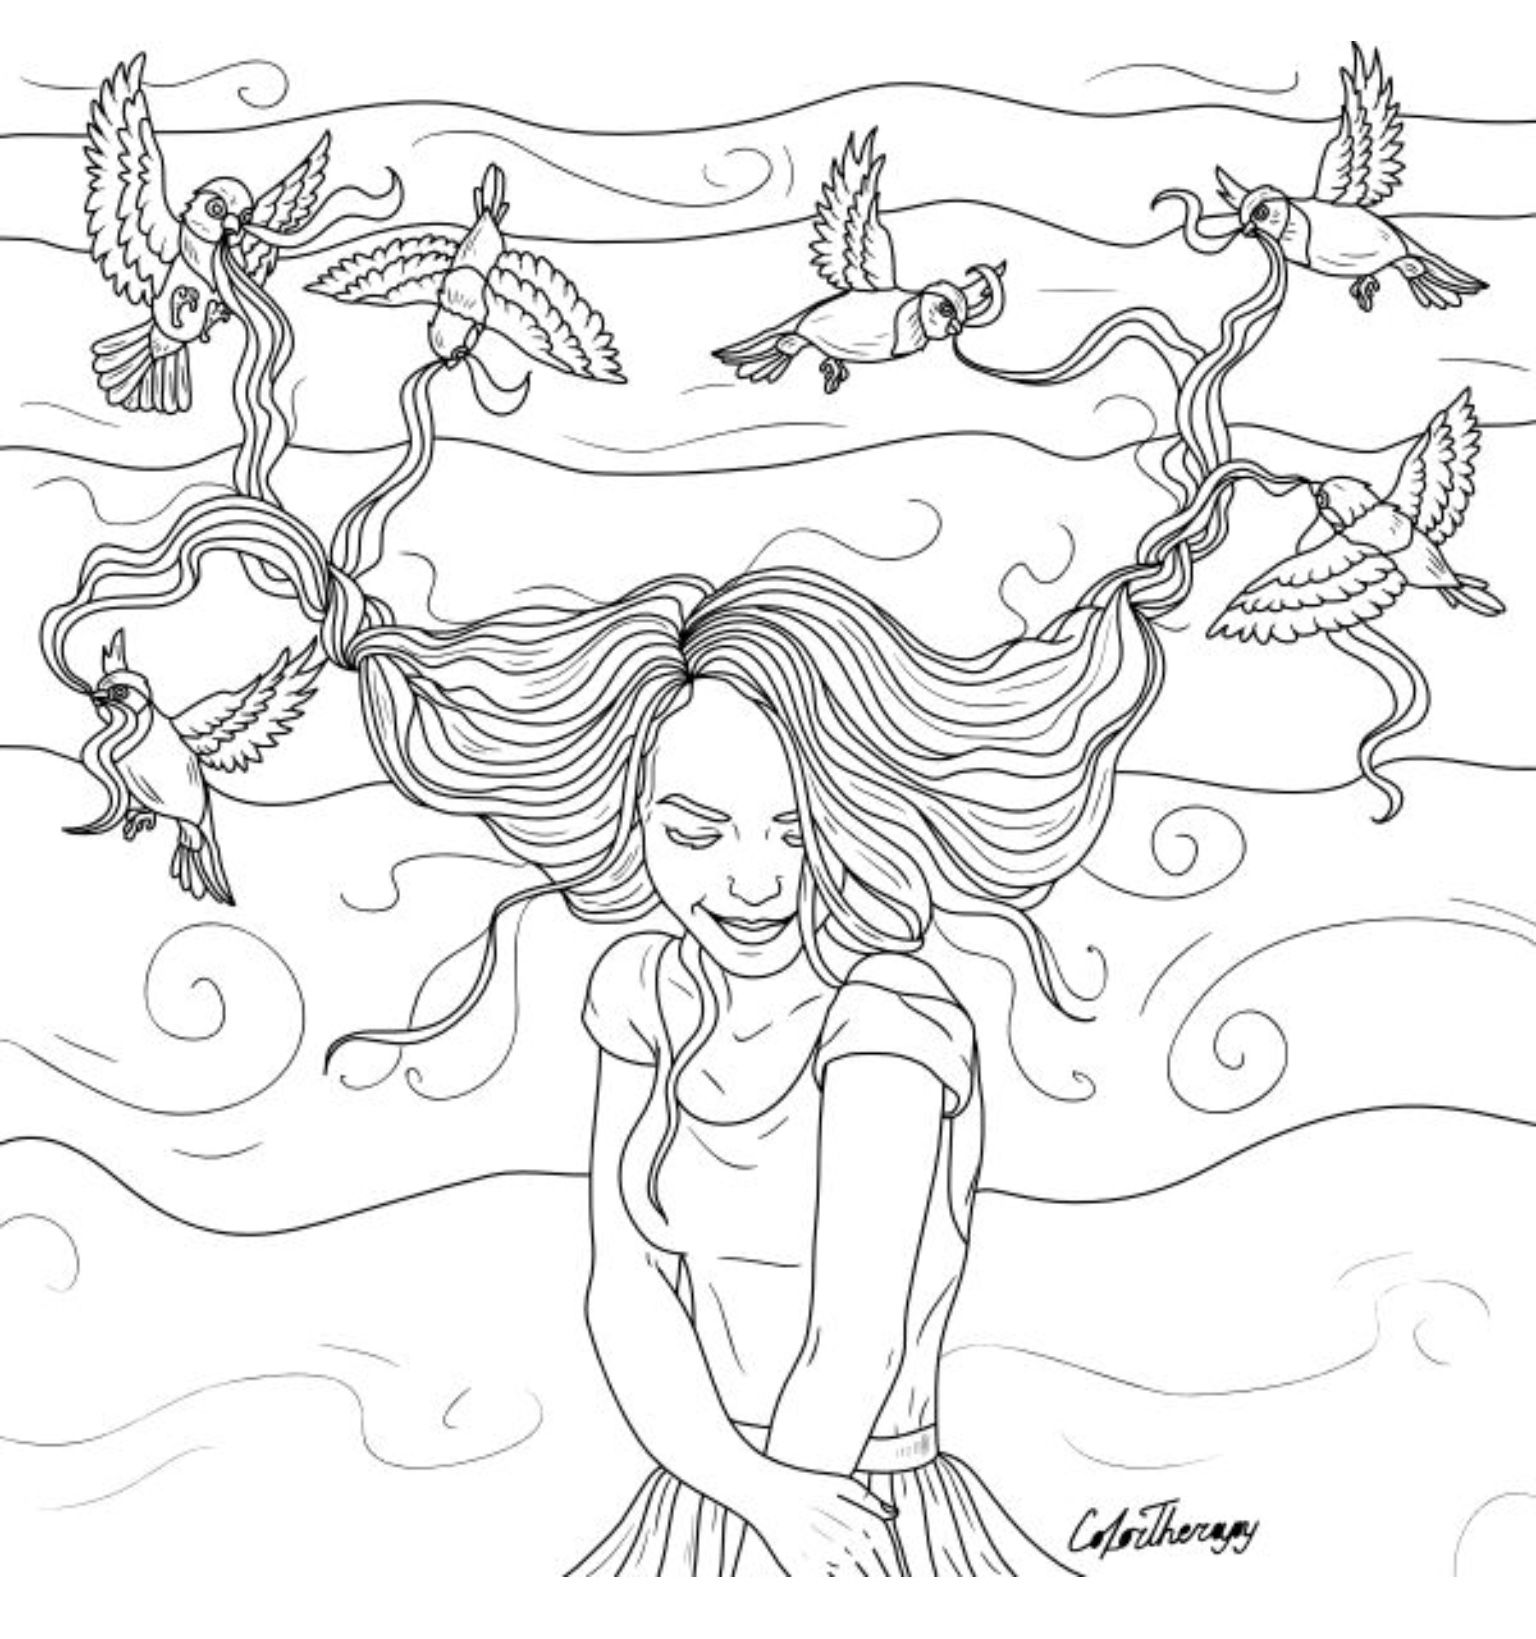 How Cute Is This Birds Braids Girl Hair To Color With Color Therapy Http Www Apple Co Colortherapyapp Coloring Book Art Free Coloring Pages Coloring Books